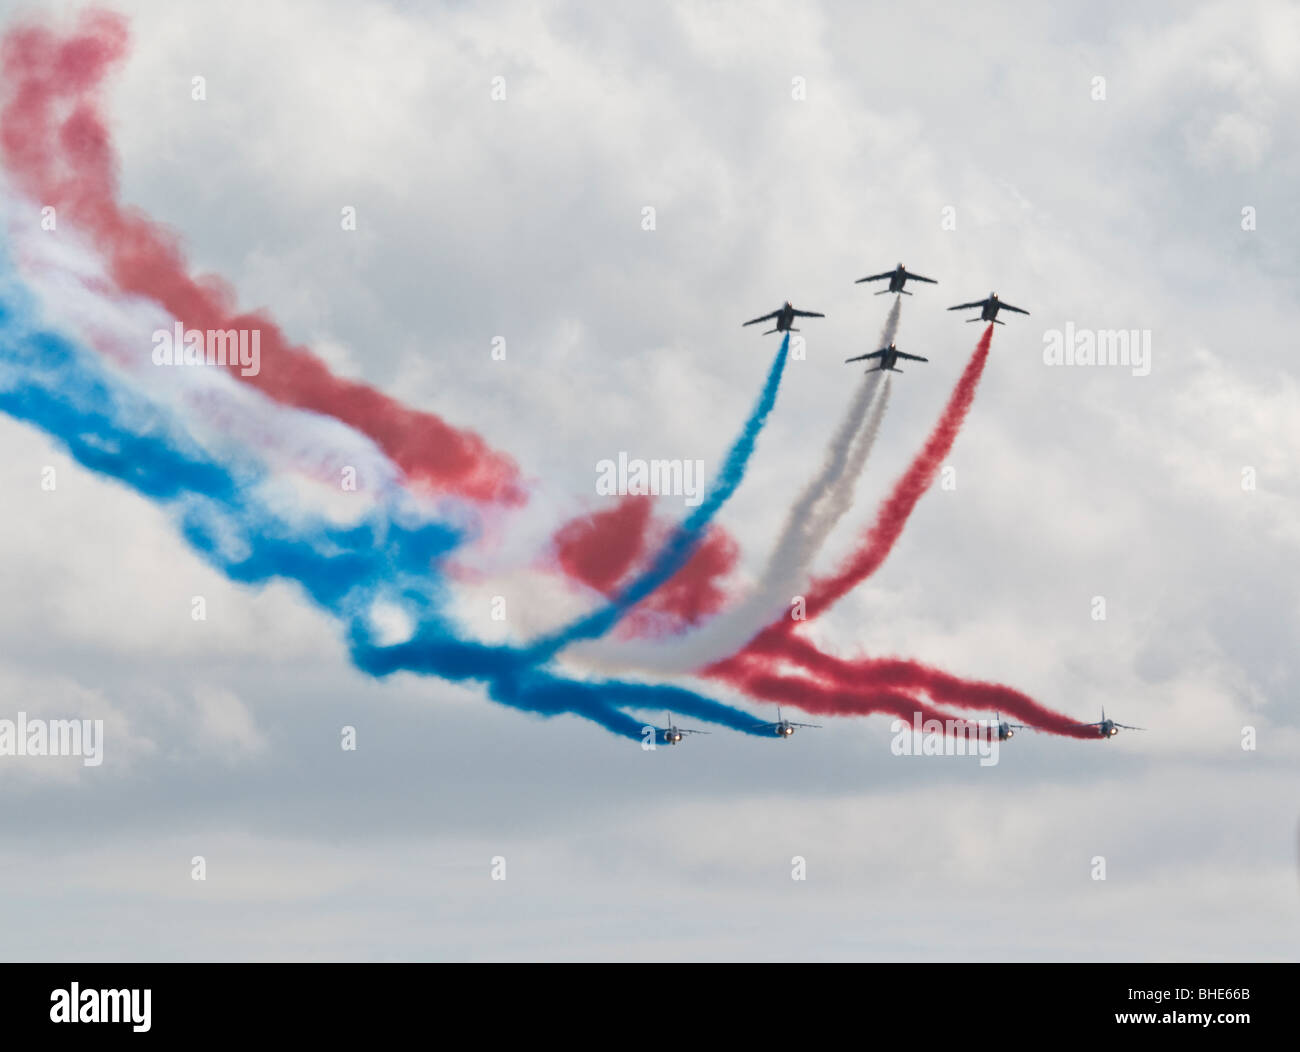 French Aerobatic display team flying in close formation trailing coloured smoke - Stock Image